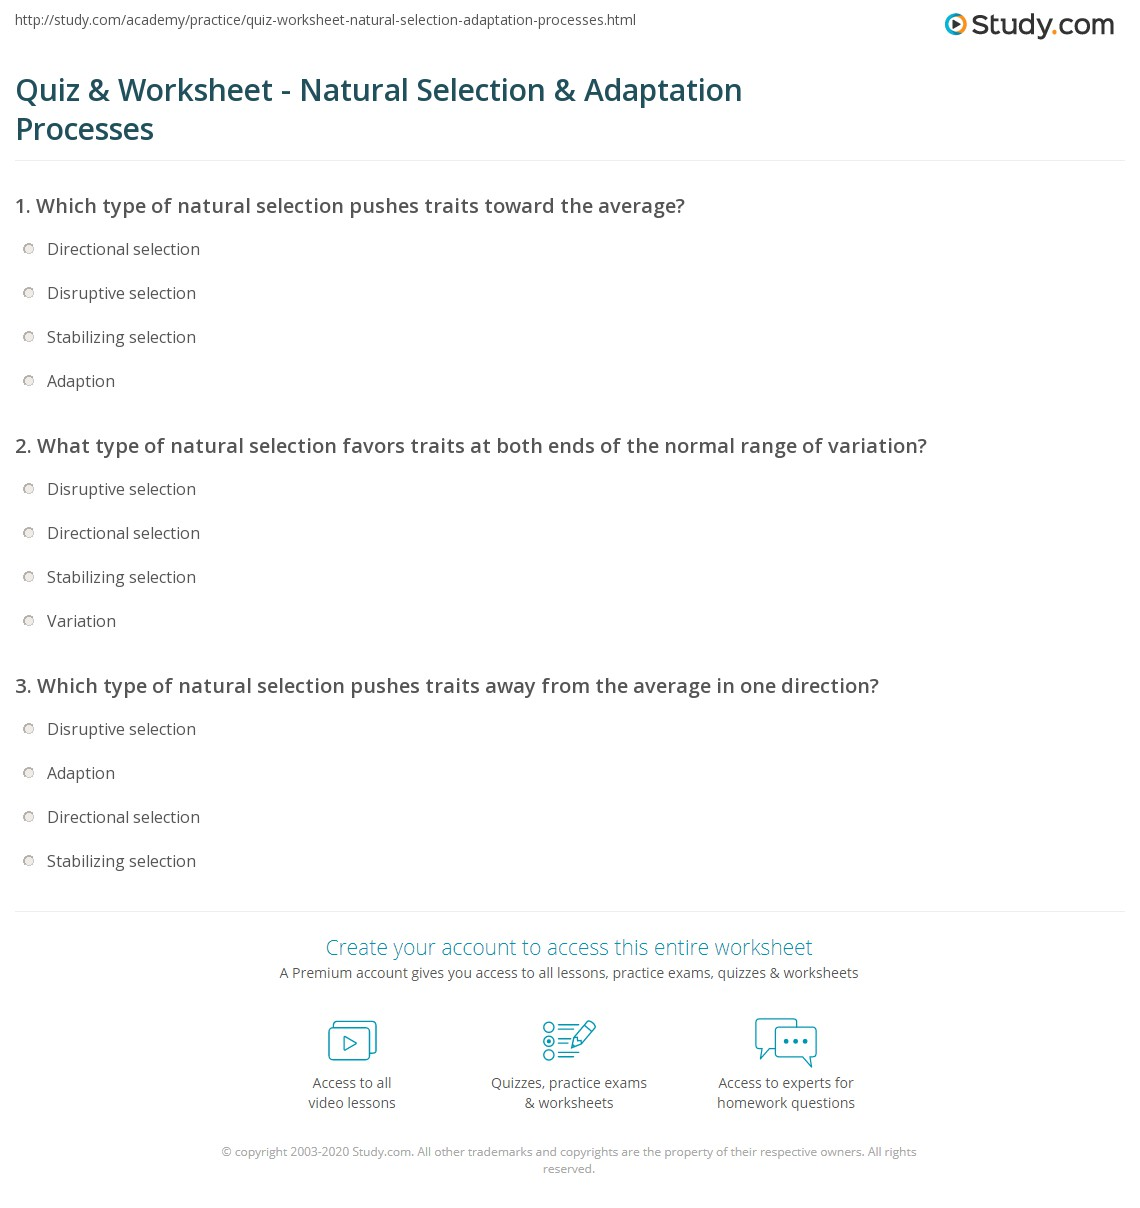 quiz worksheet natural selection adaptation processes. Black Bedroom Furniture Sets. Home Design Ideas